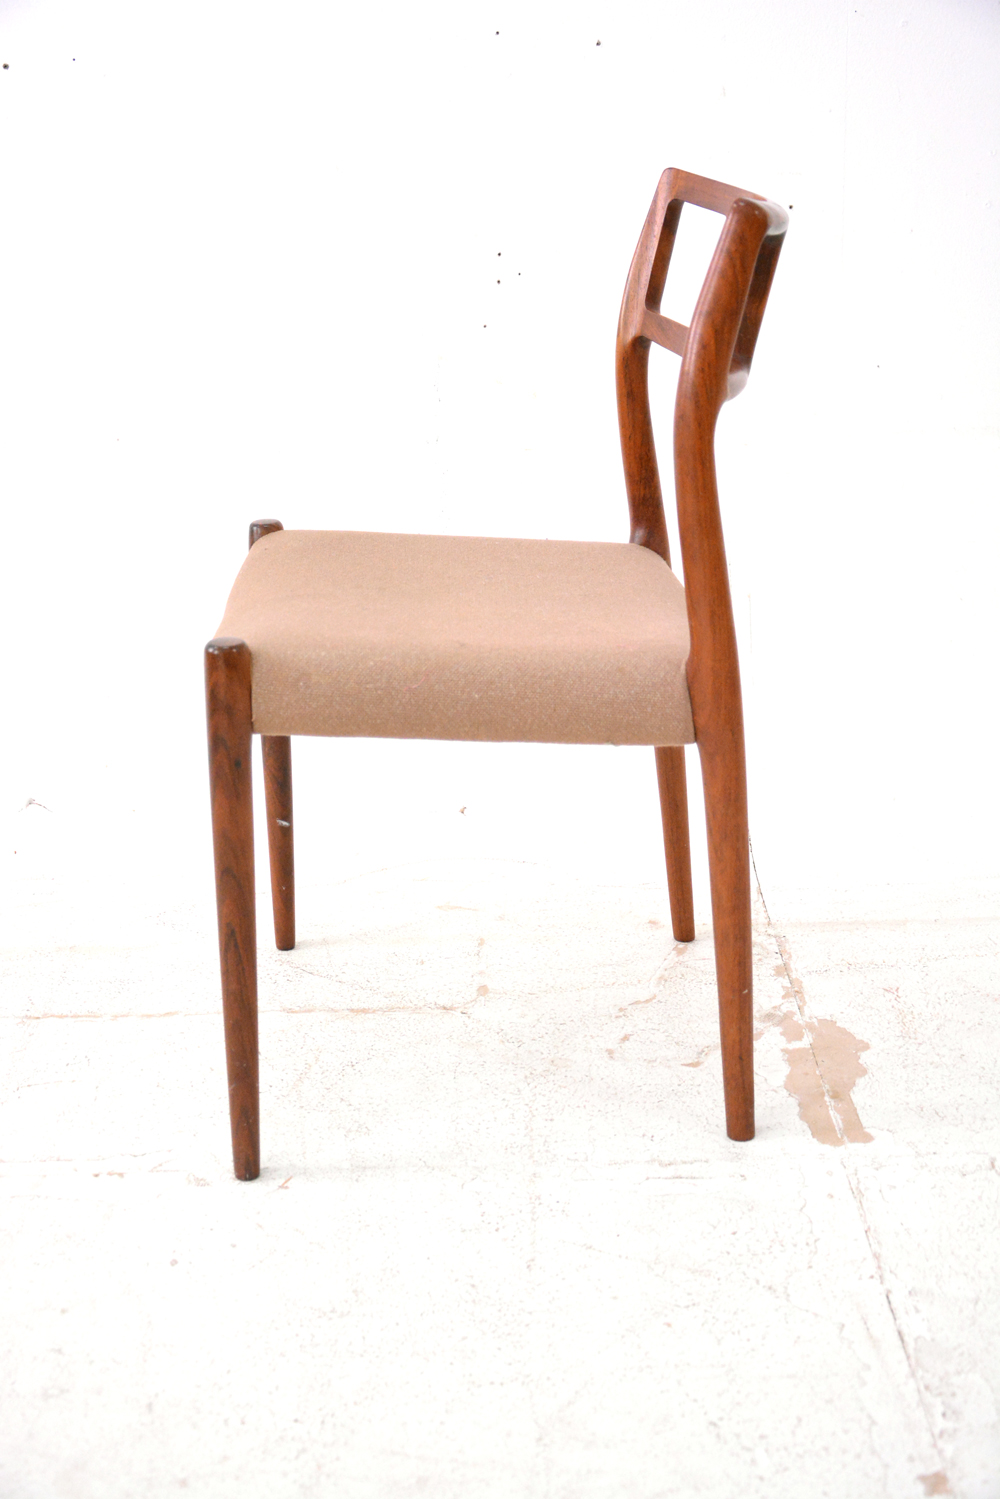 Niels moller dining chairs model in rosewood danish